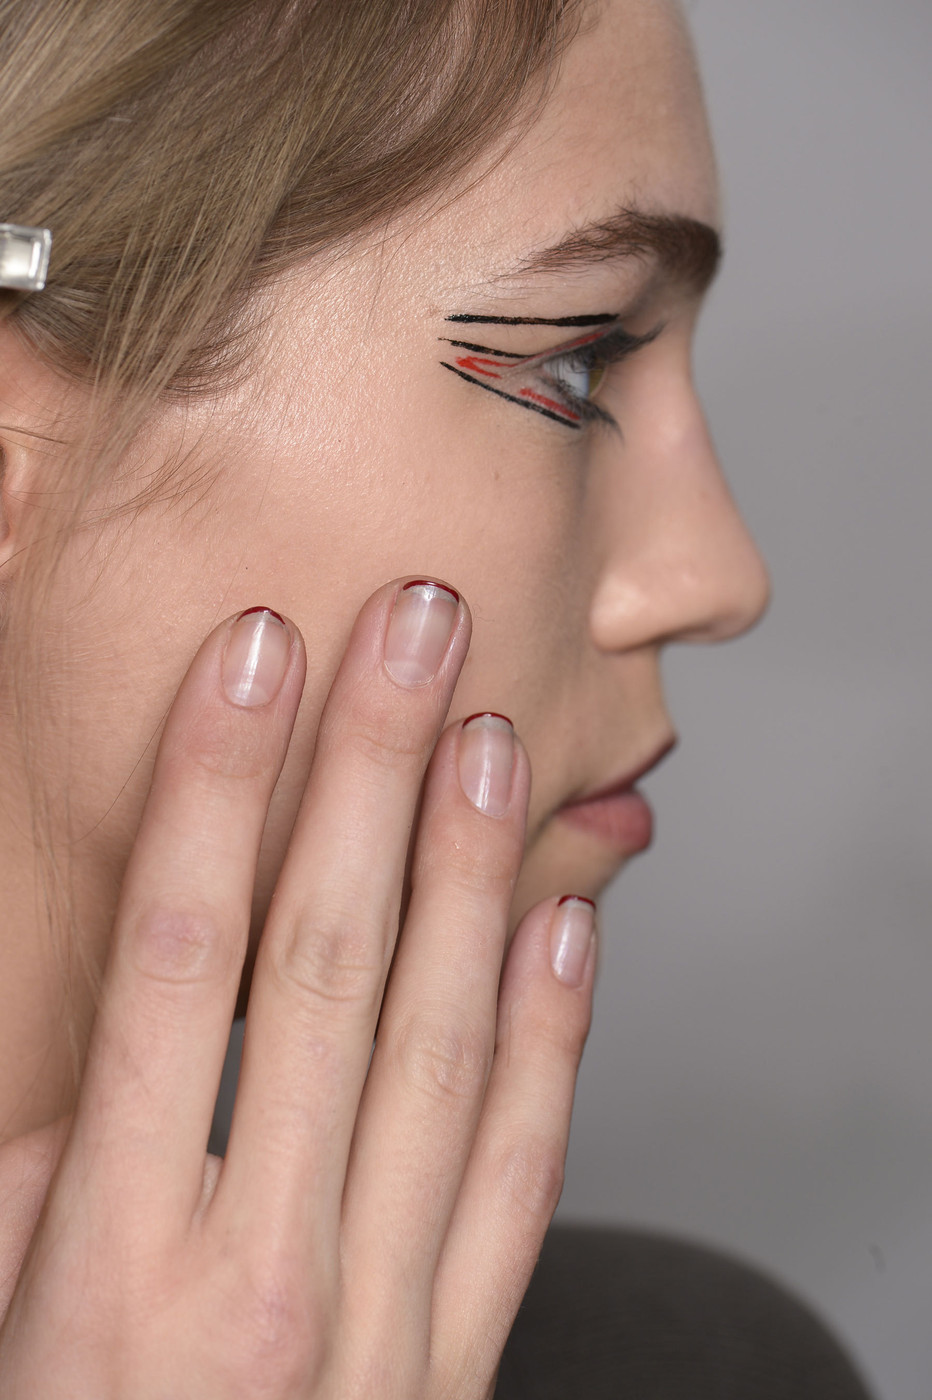 Nail Trend to Try this Fall: The Negative Space Manicure